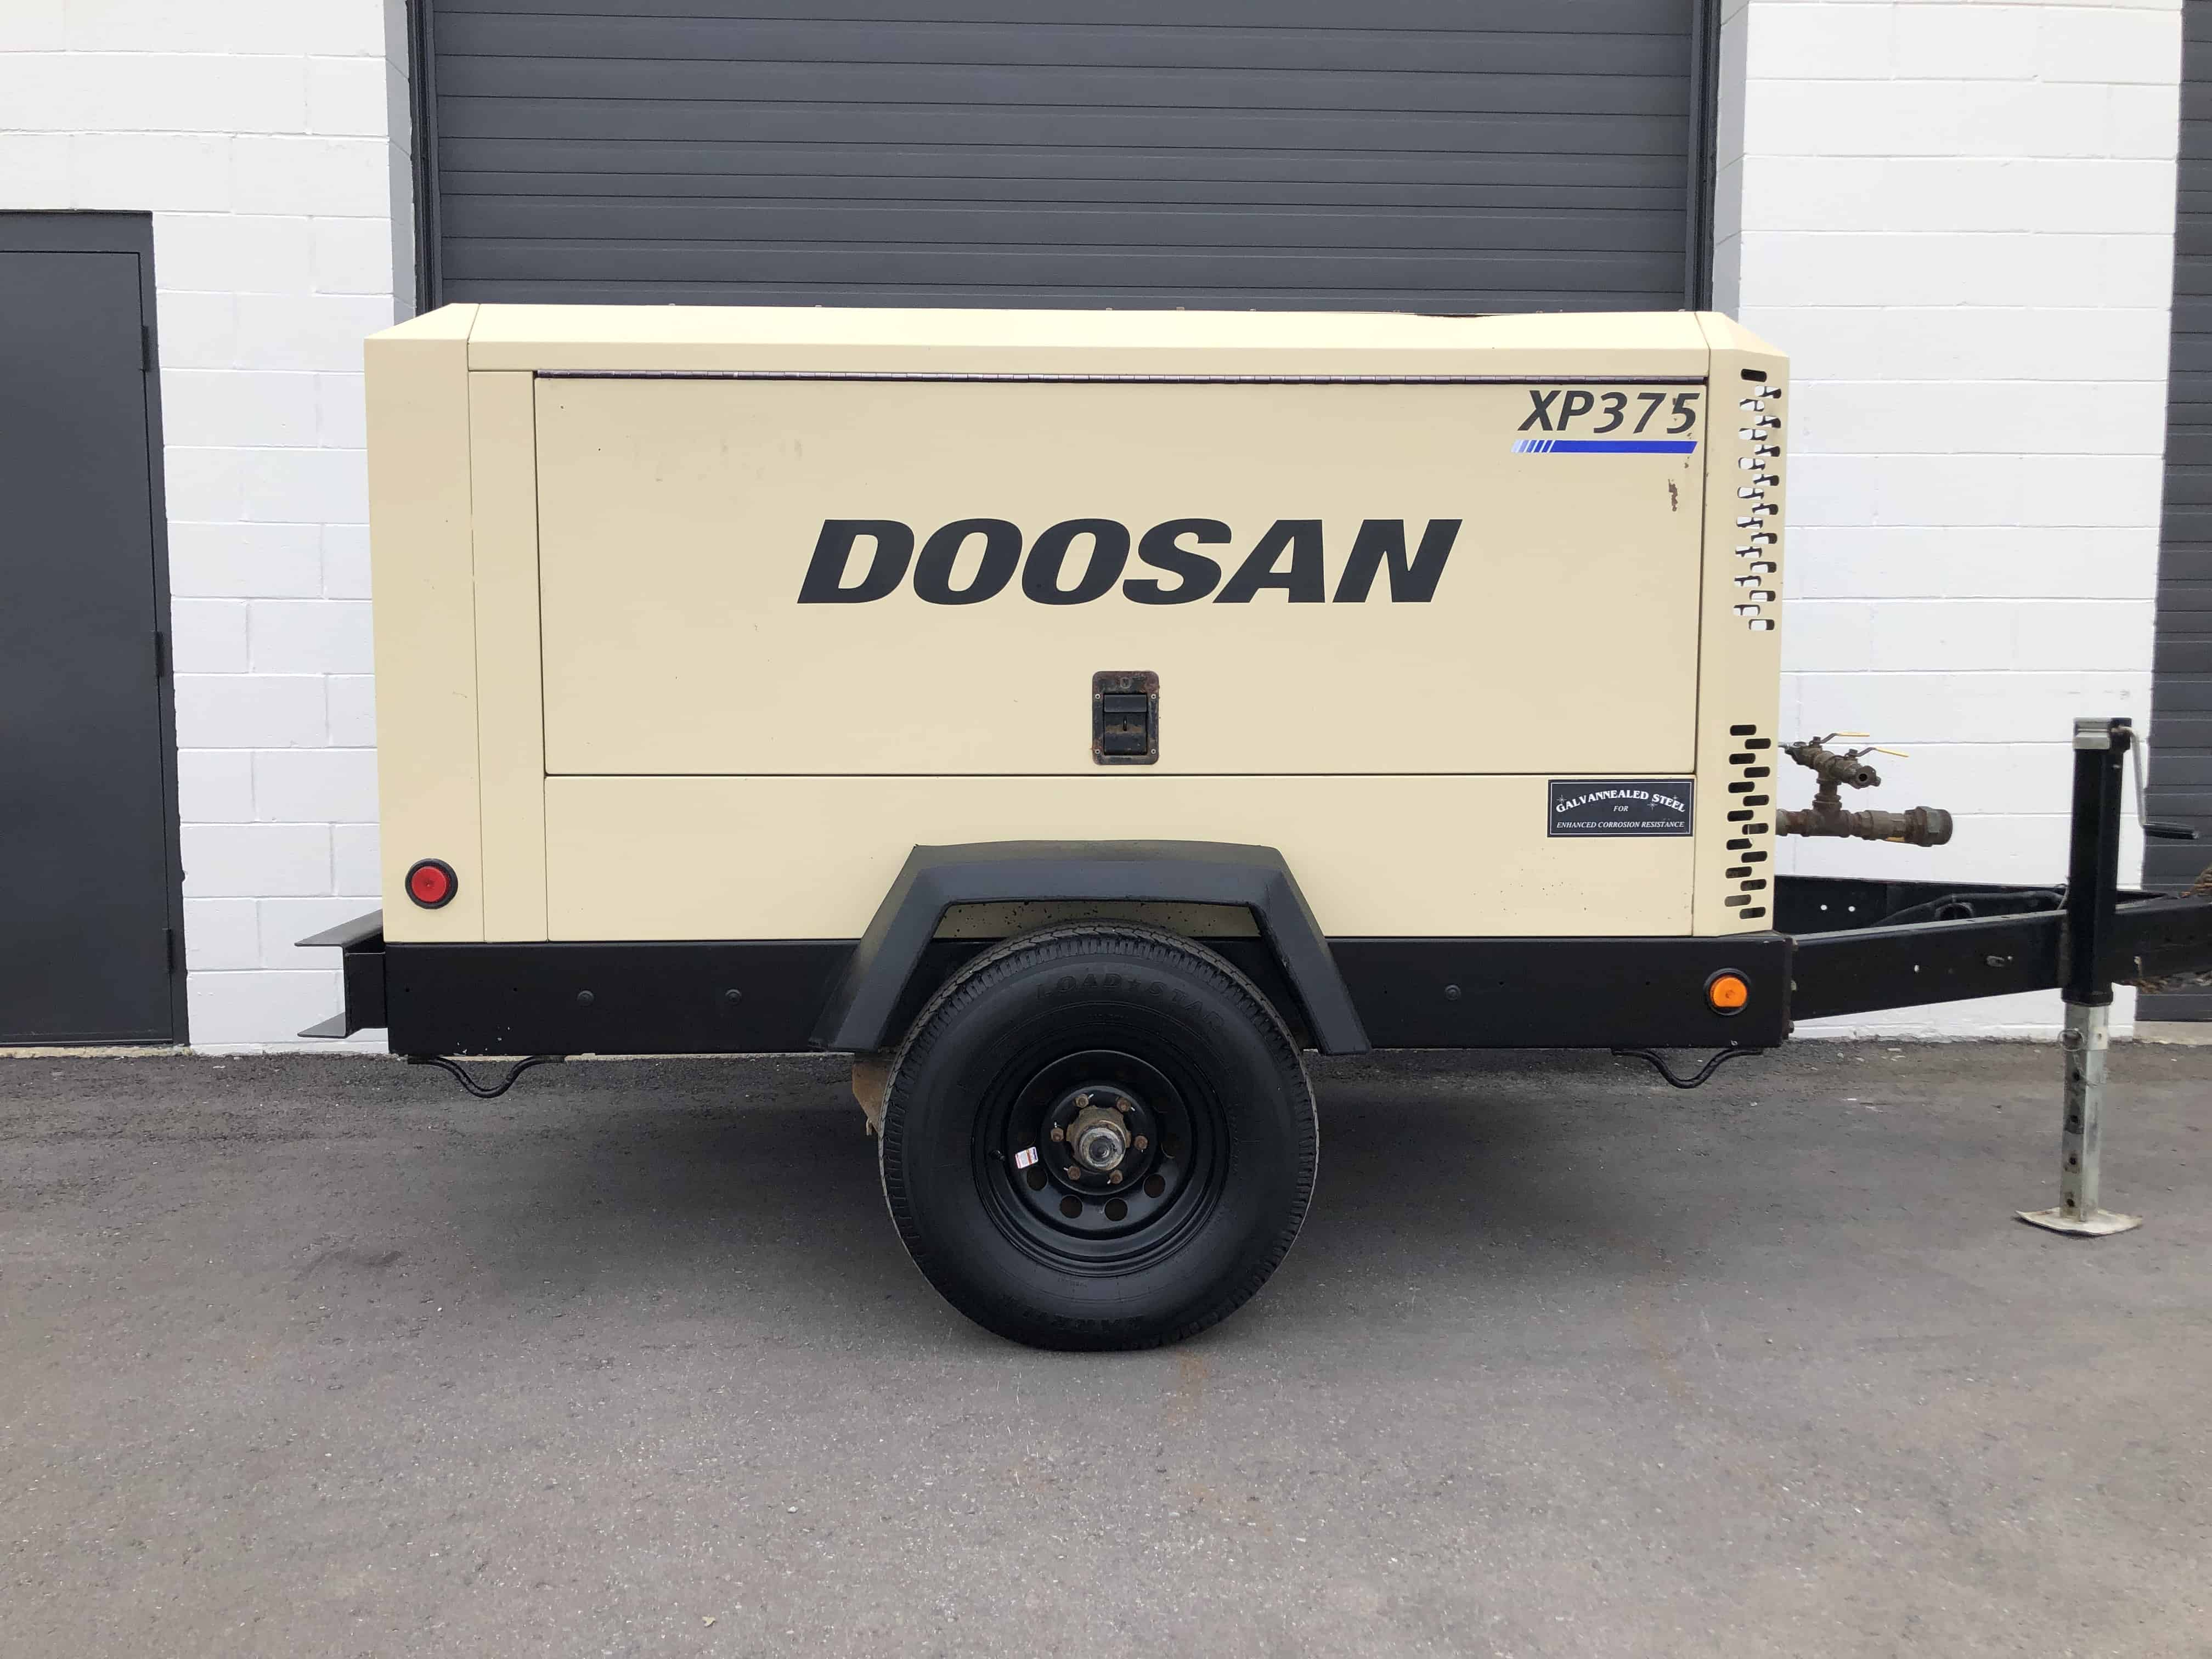 Doosan 375 diesel air compressor for sale - Towable Tools